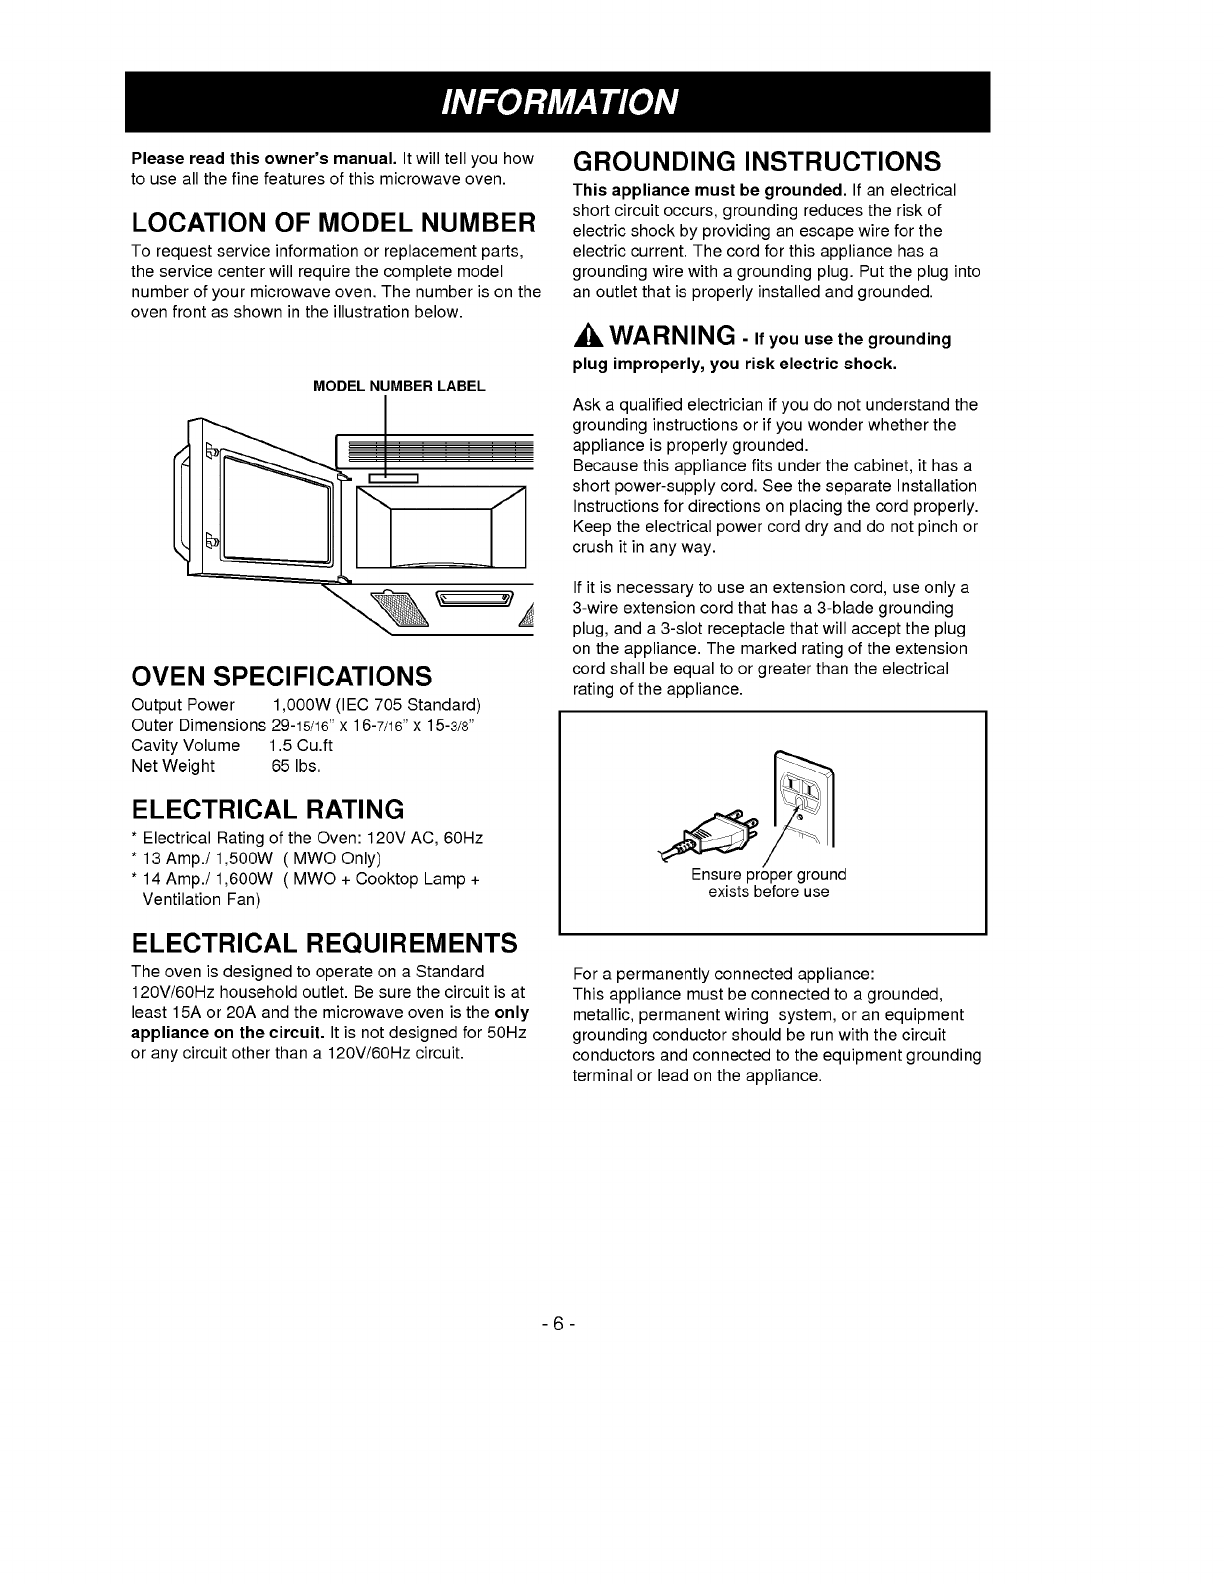 Page 6 Of Goldstar Microwave Oven Mv 1525b User Guide A Short Circuit Occurs When Please Read This Owners Manual Itwill Tellyou How